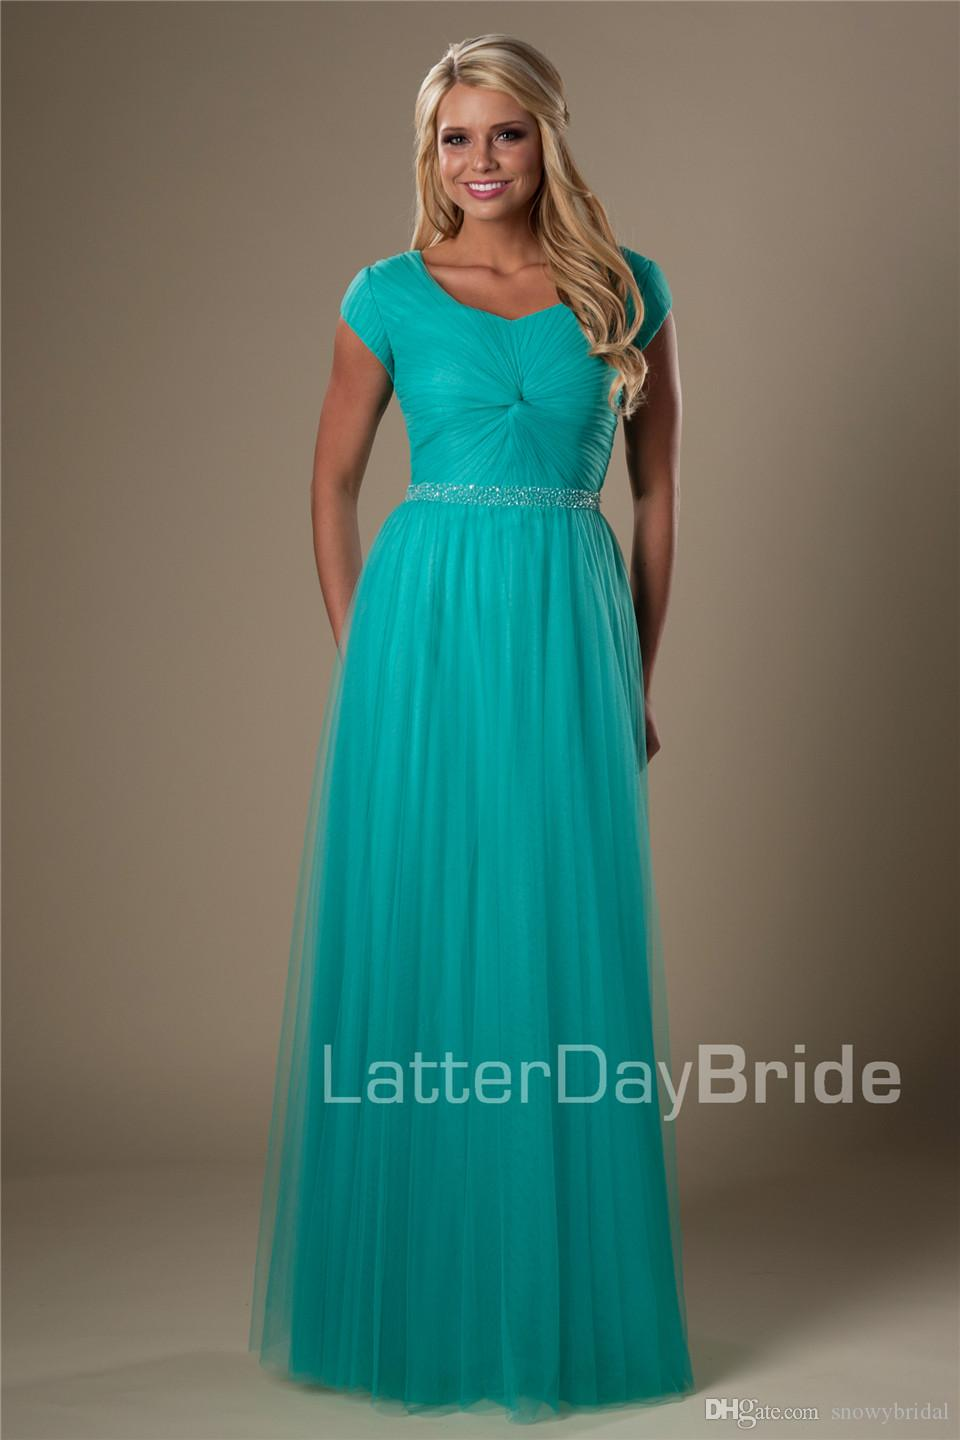 Modest Bridesmaid Dresses Turquoise